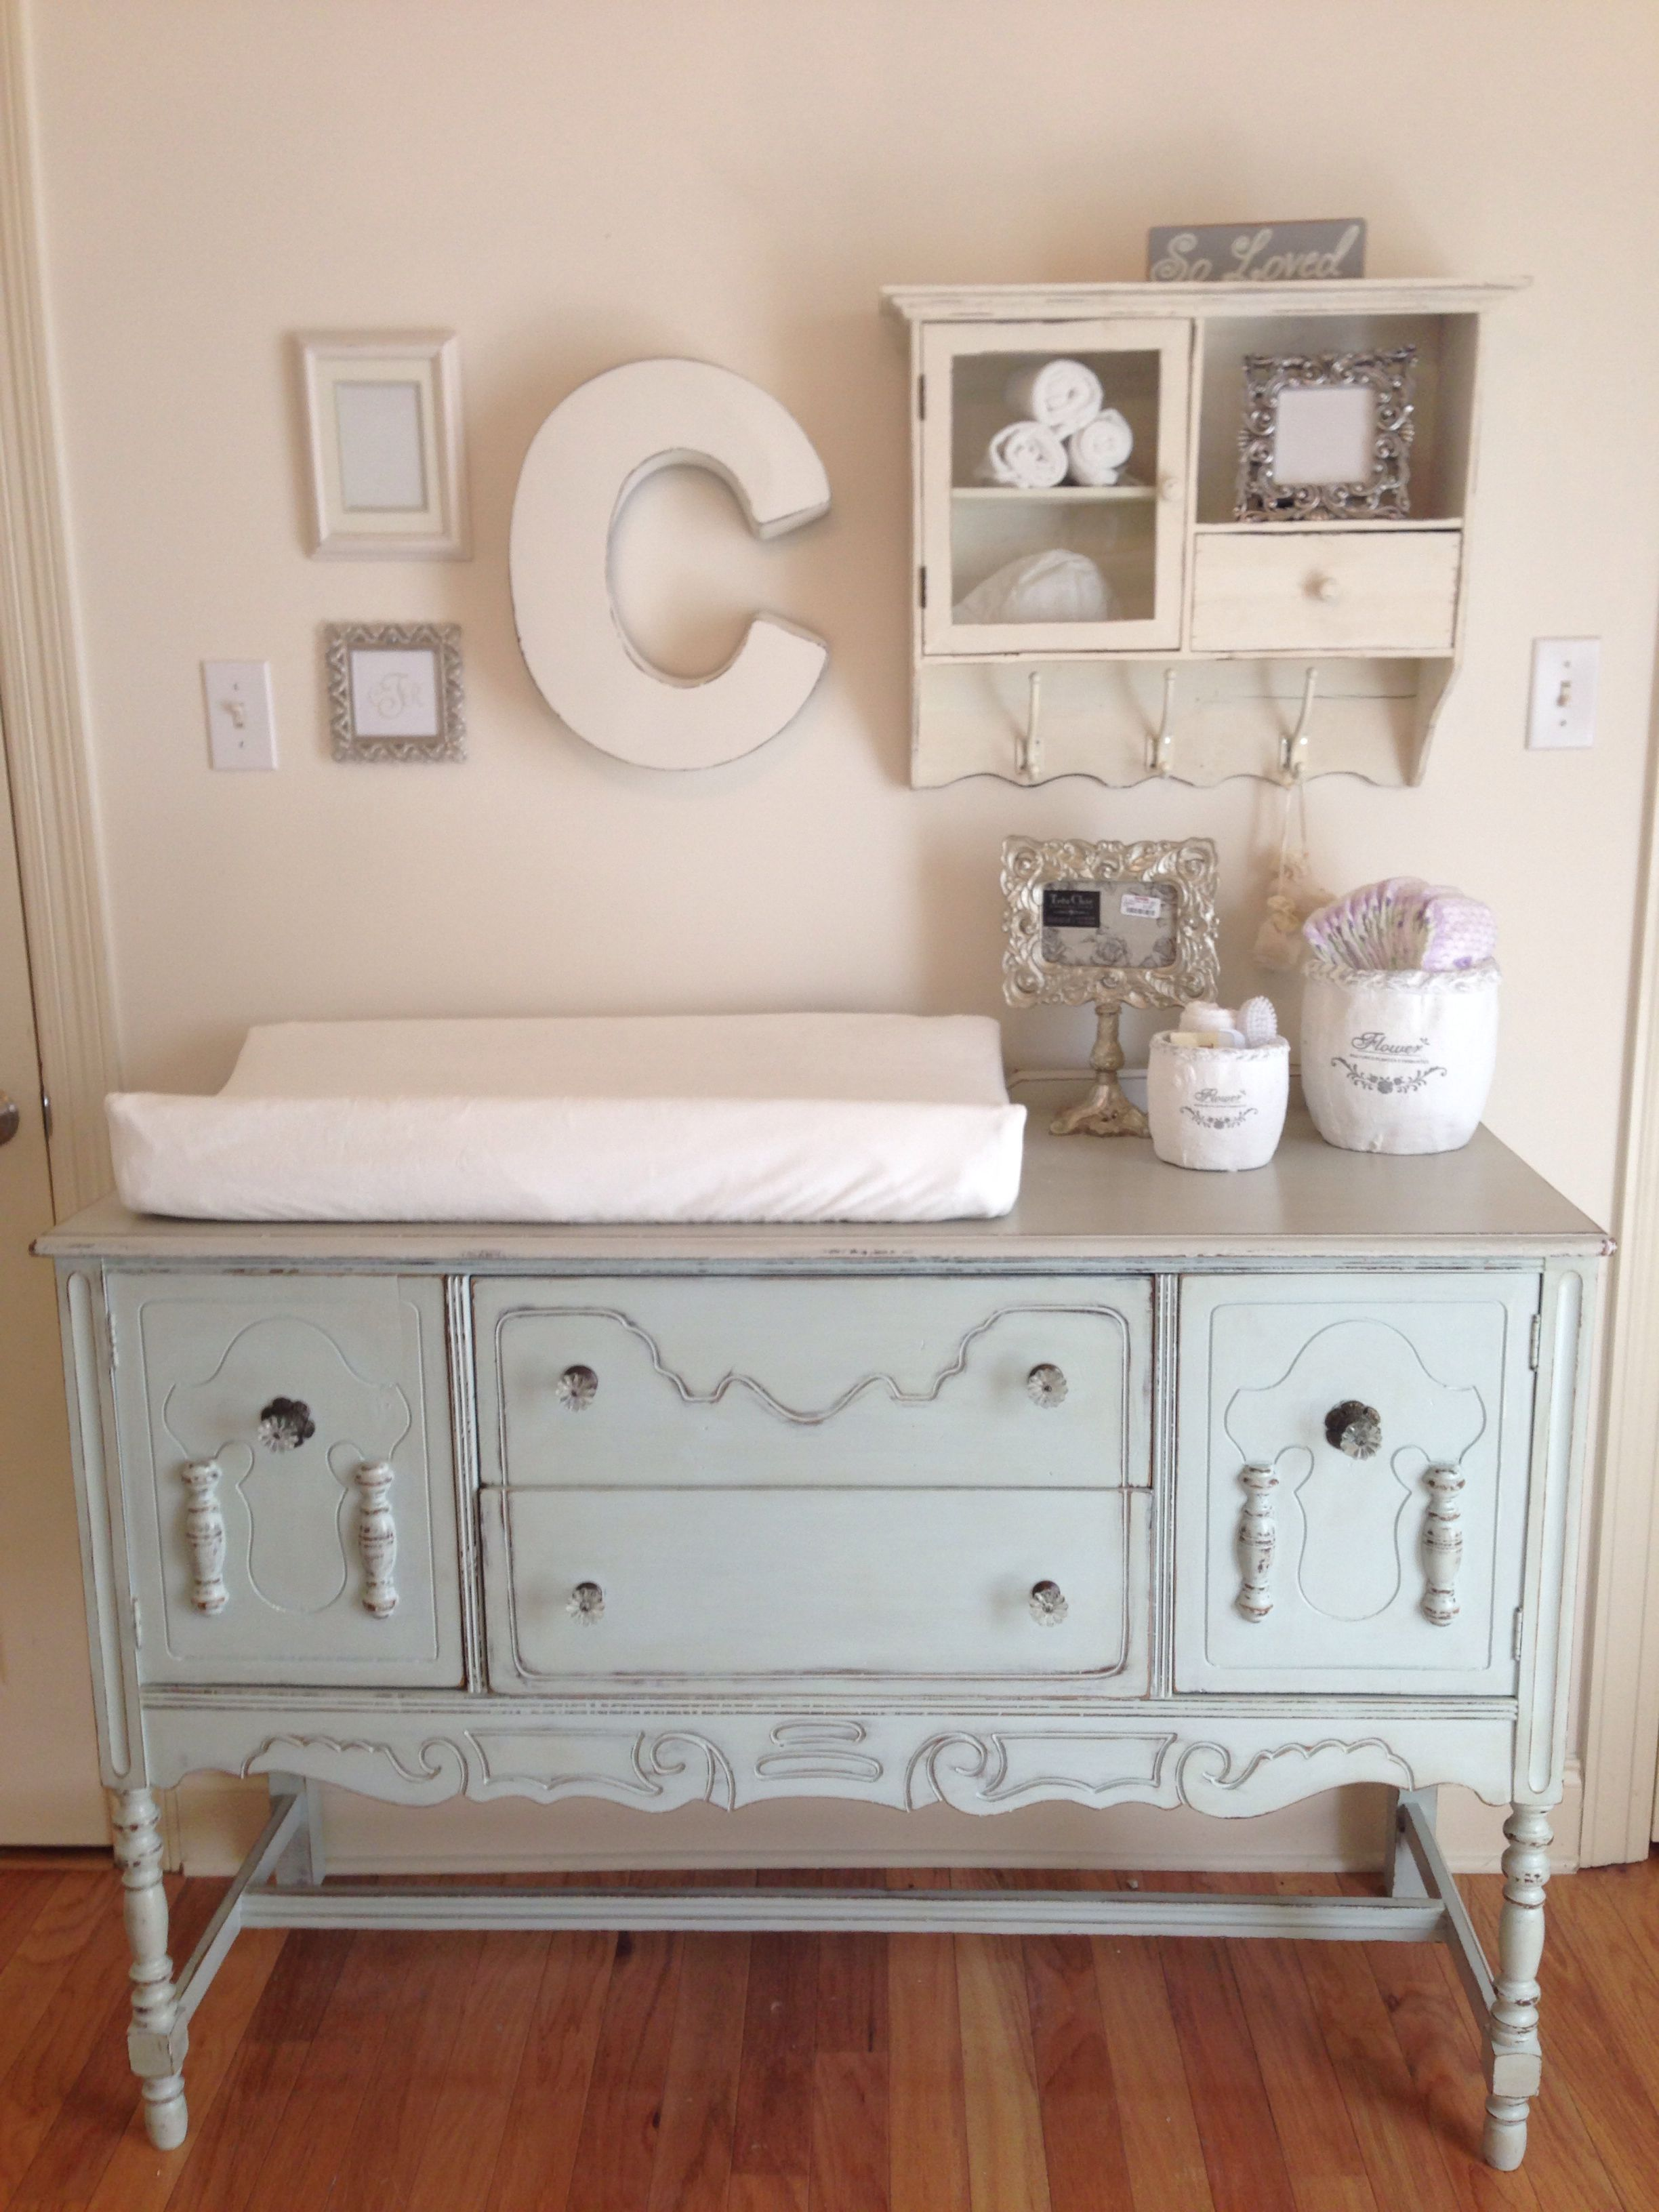 Shabby Chic Vintage Nursery Shabby Chic Nursery Buffet Converted To Changing Table Katie